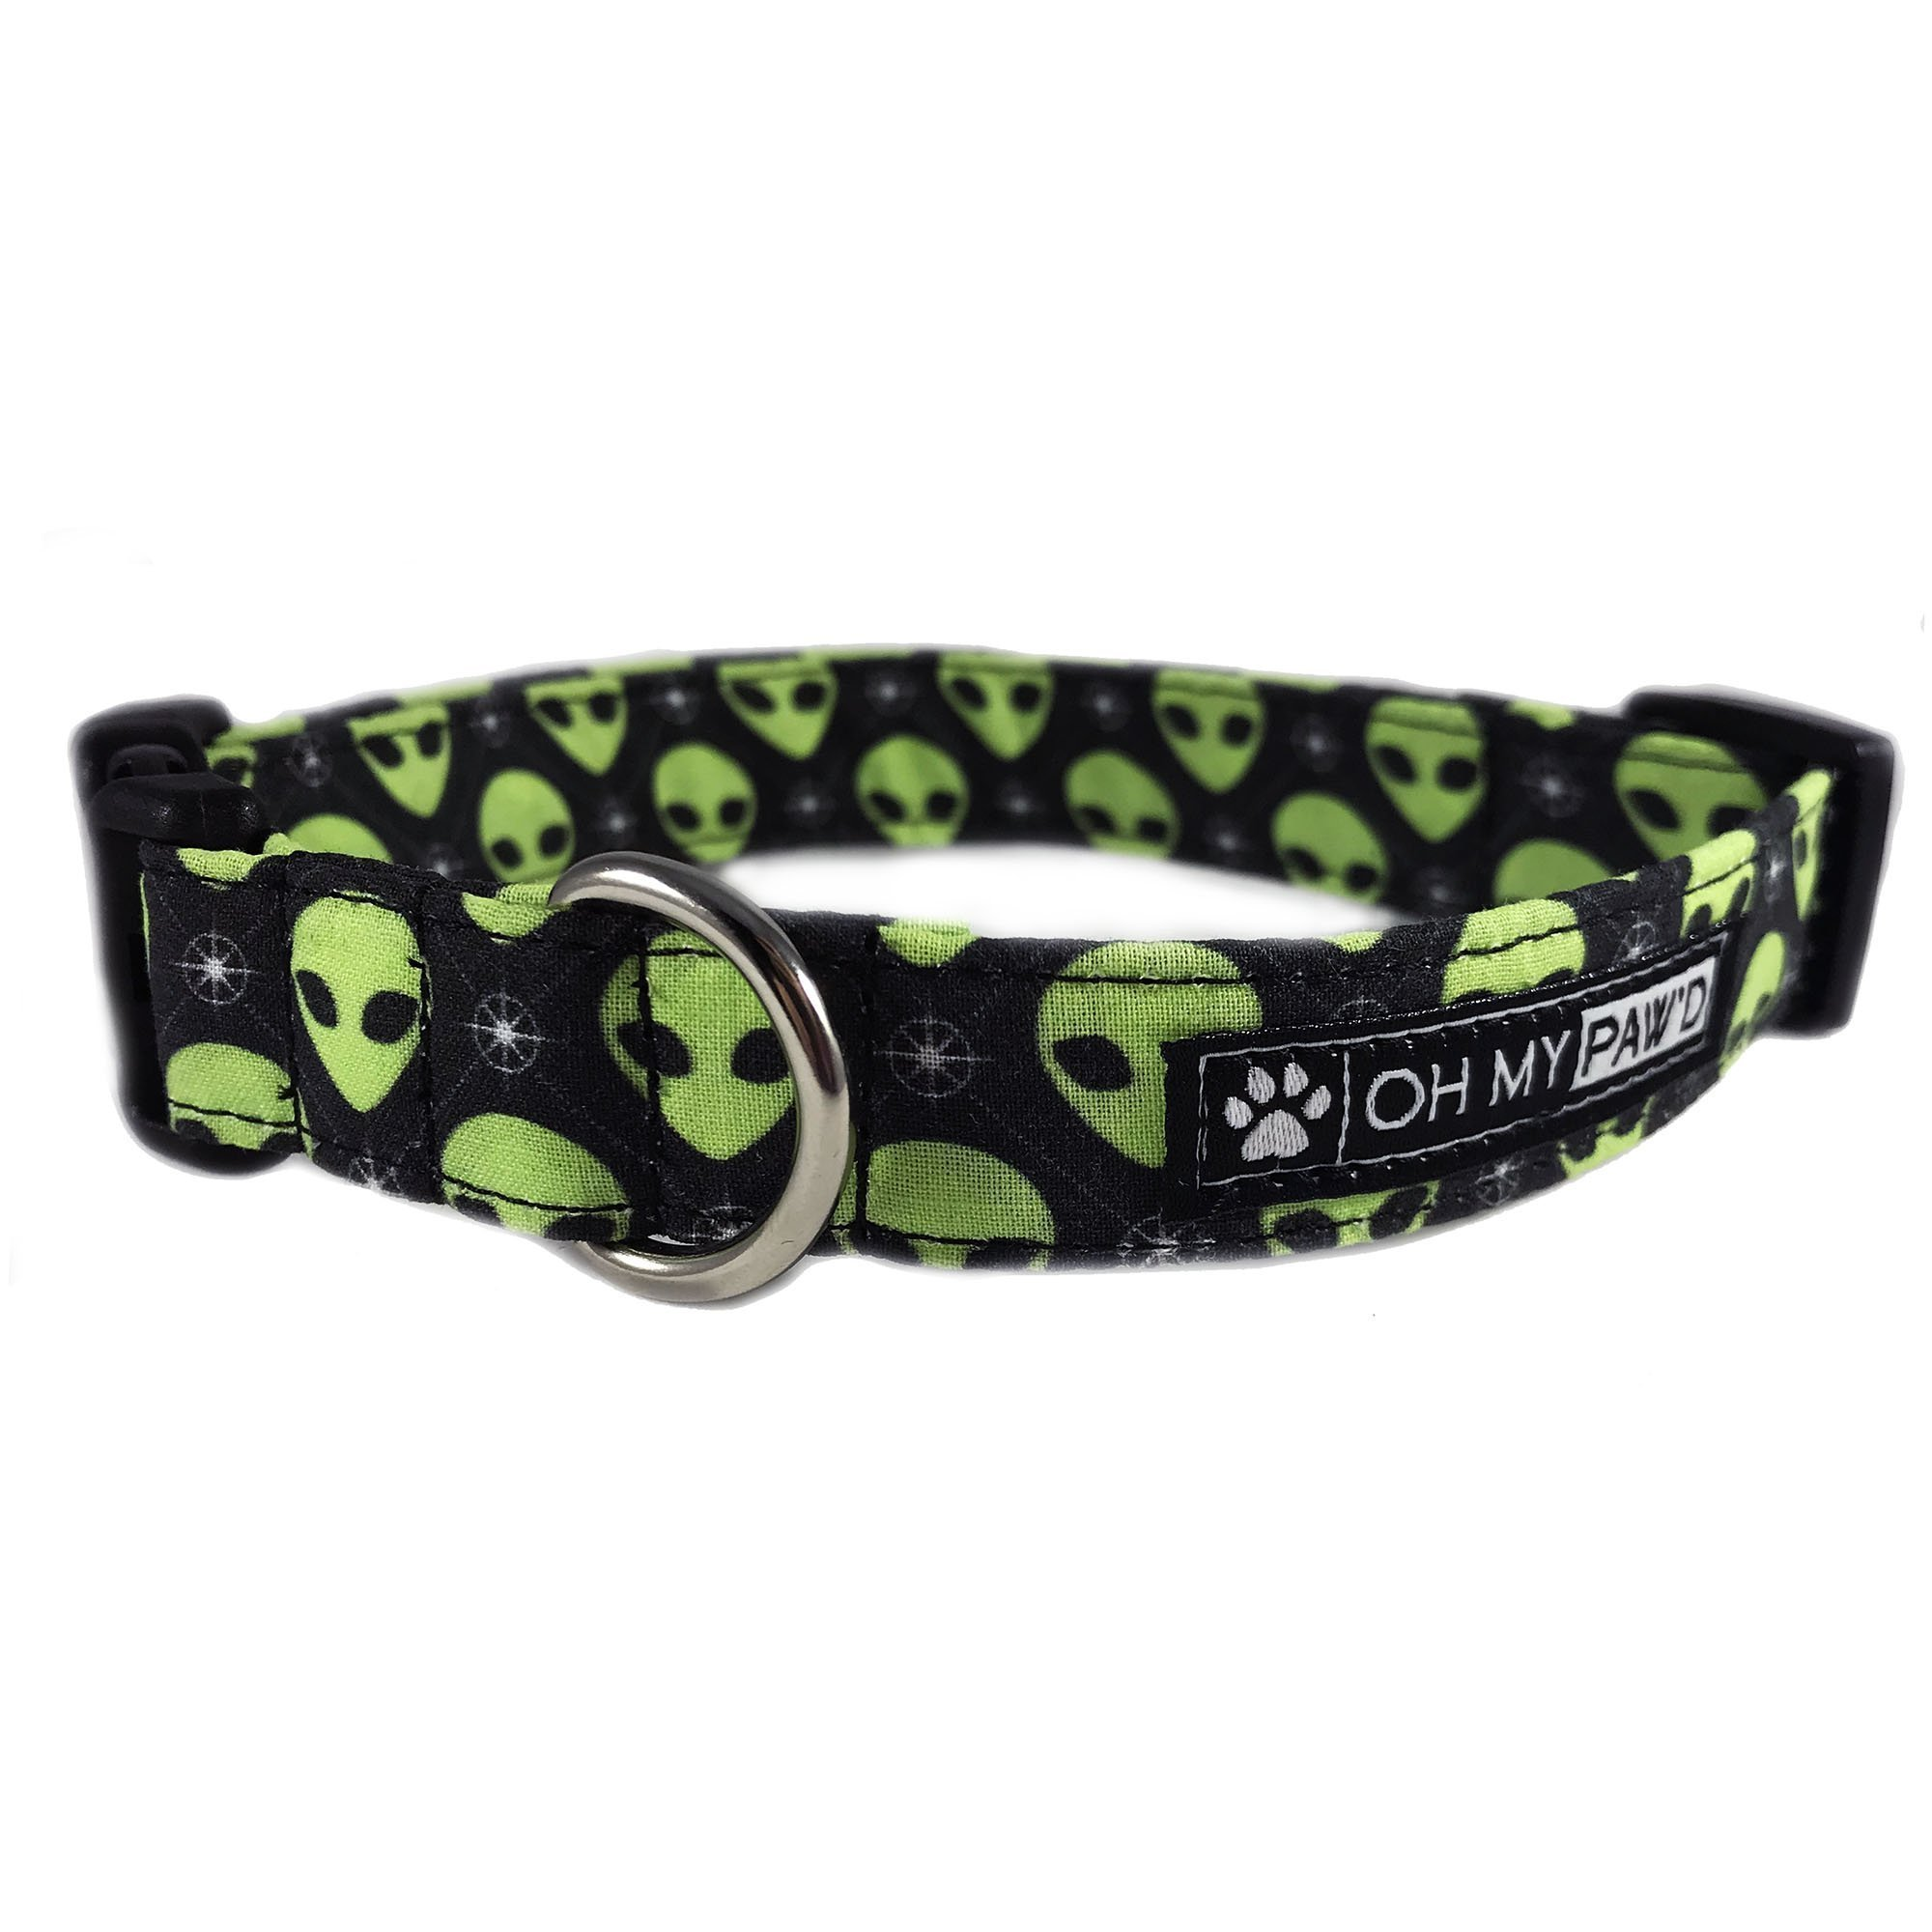 Green Martian Head Dog or Cat Collar for Pets Size Extra Small 5/8'' Wide and 7-11'' Long by Oh My Paw'd